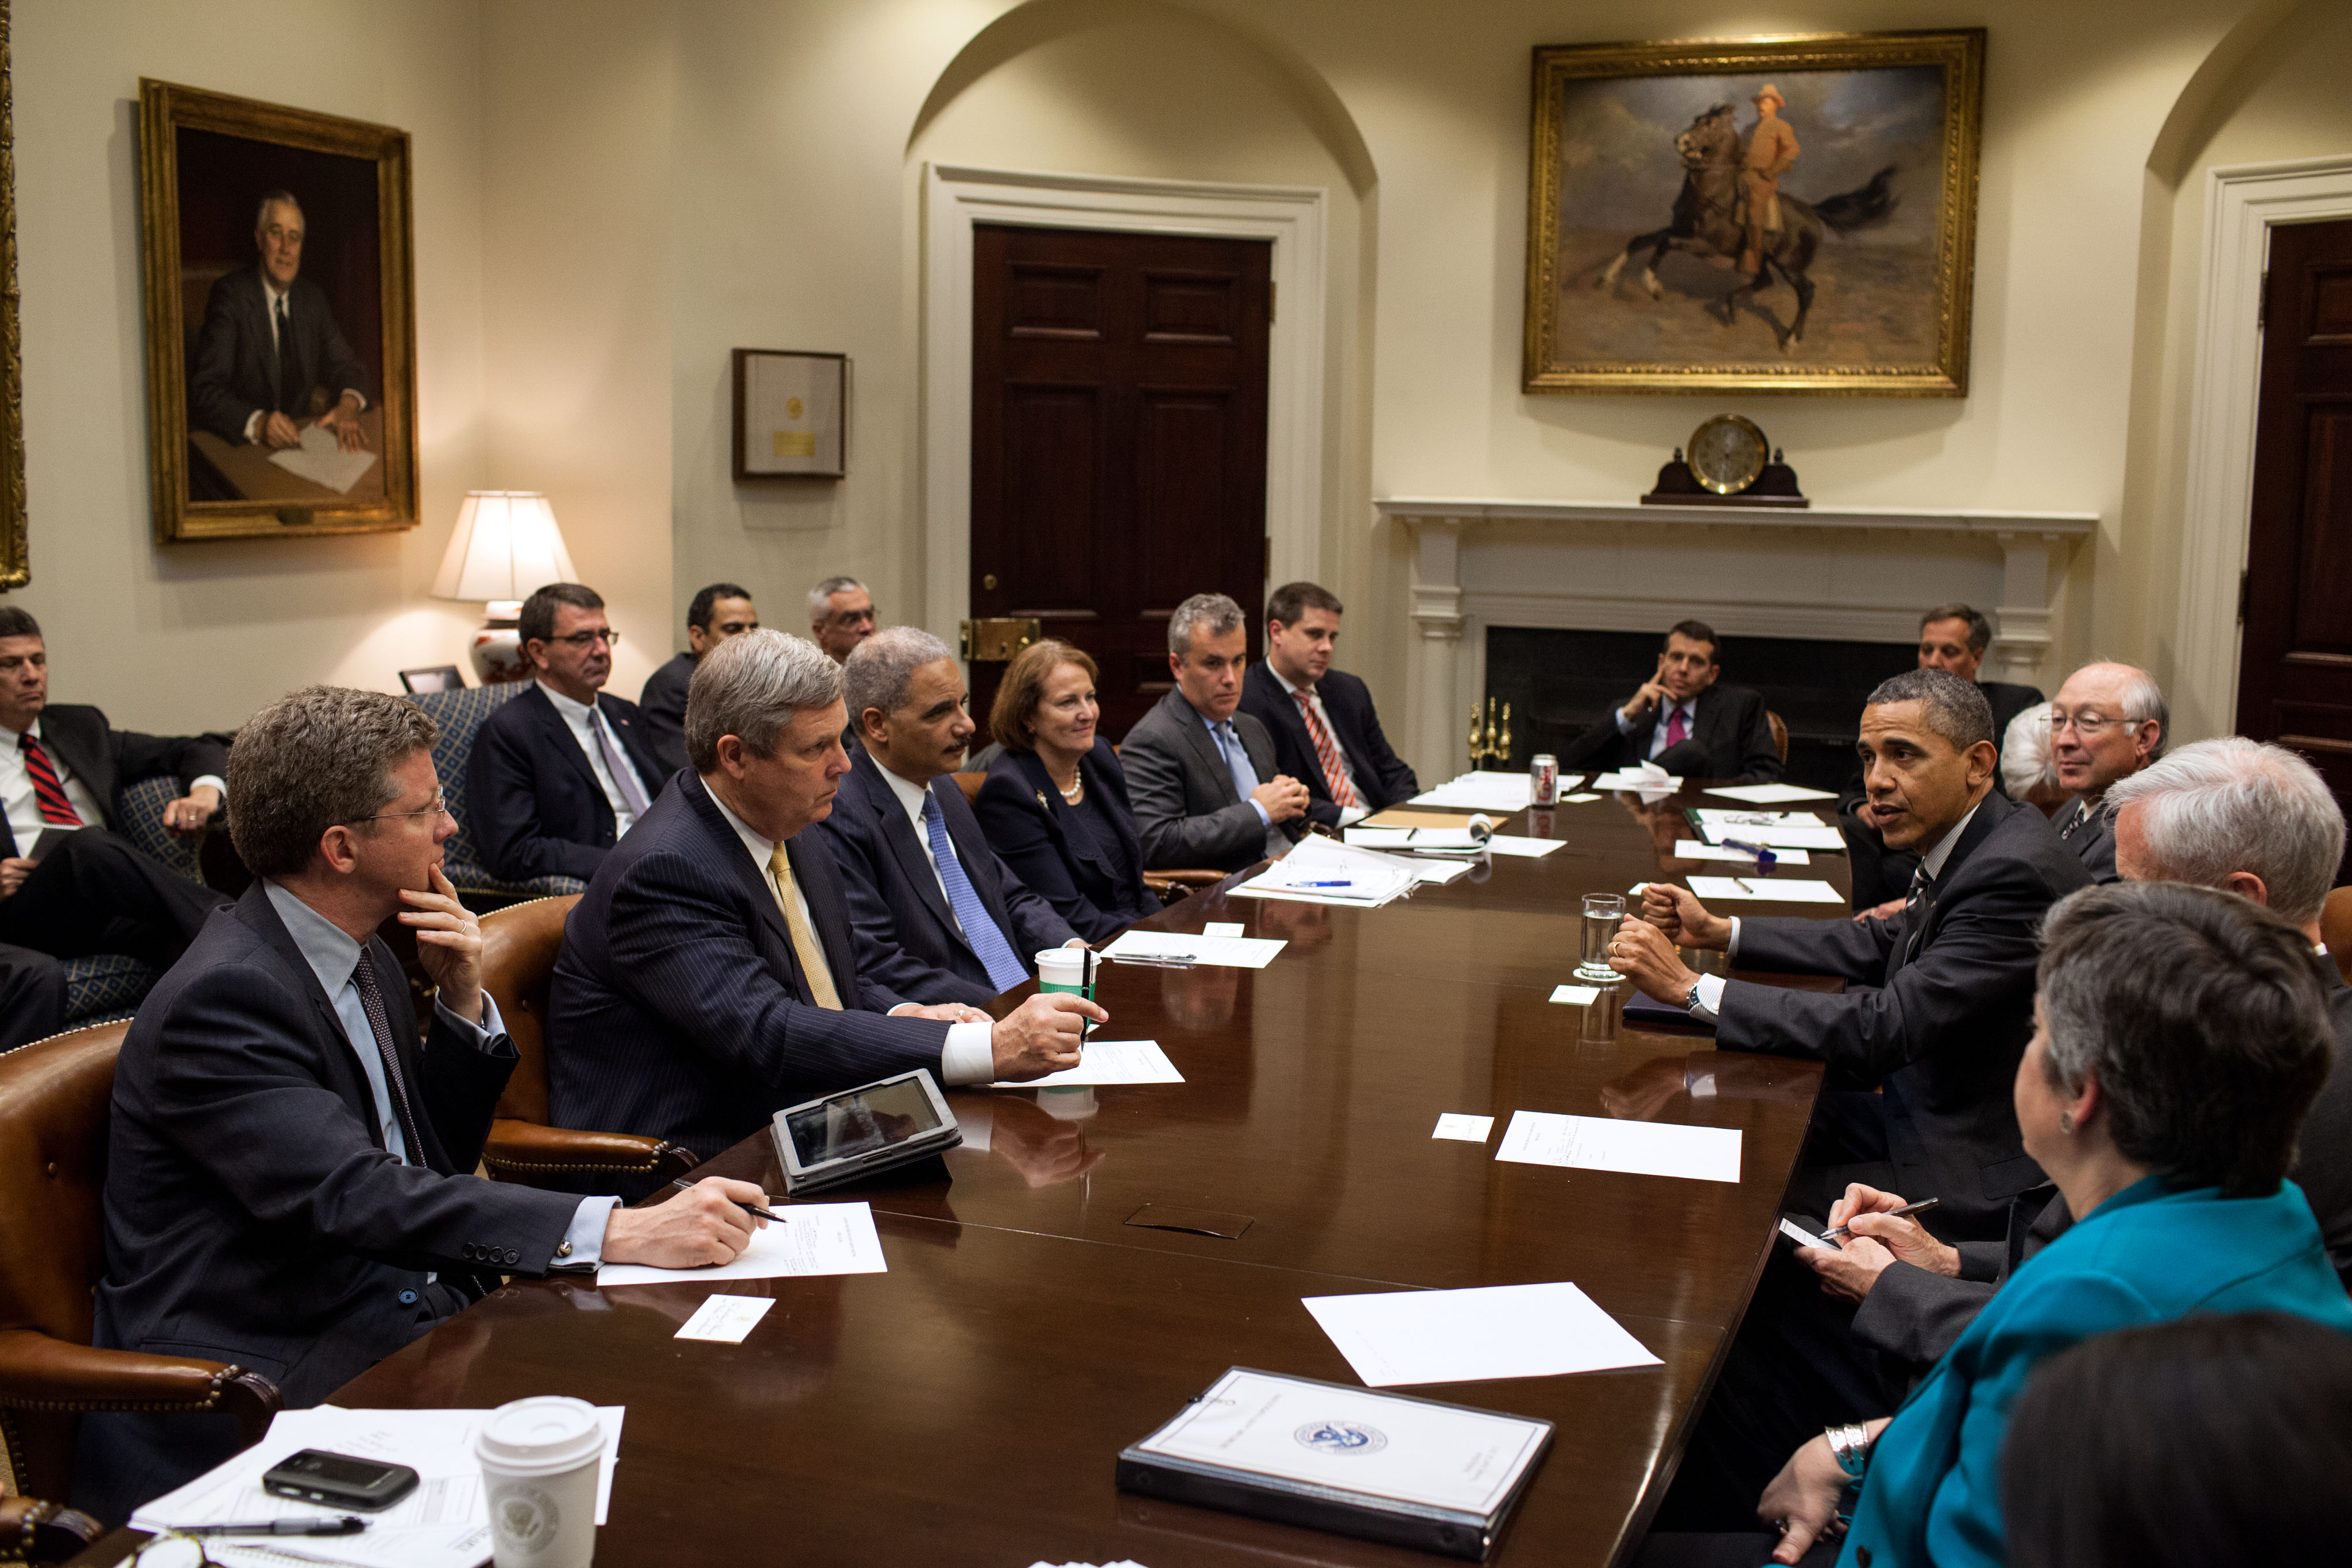 File:Barack Obama drops by a meeting with Cabinet members, 2012 ...